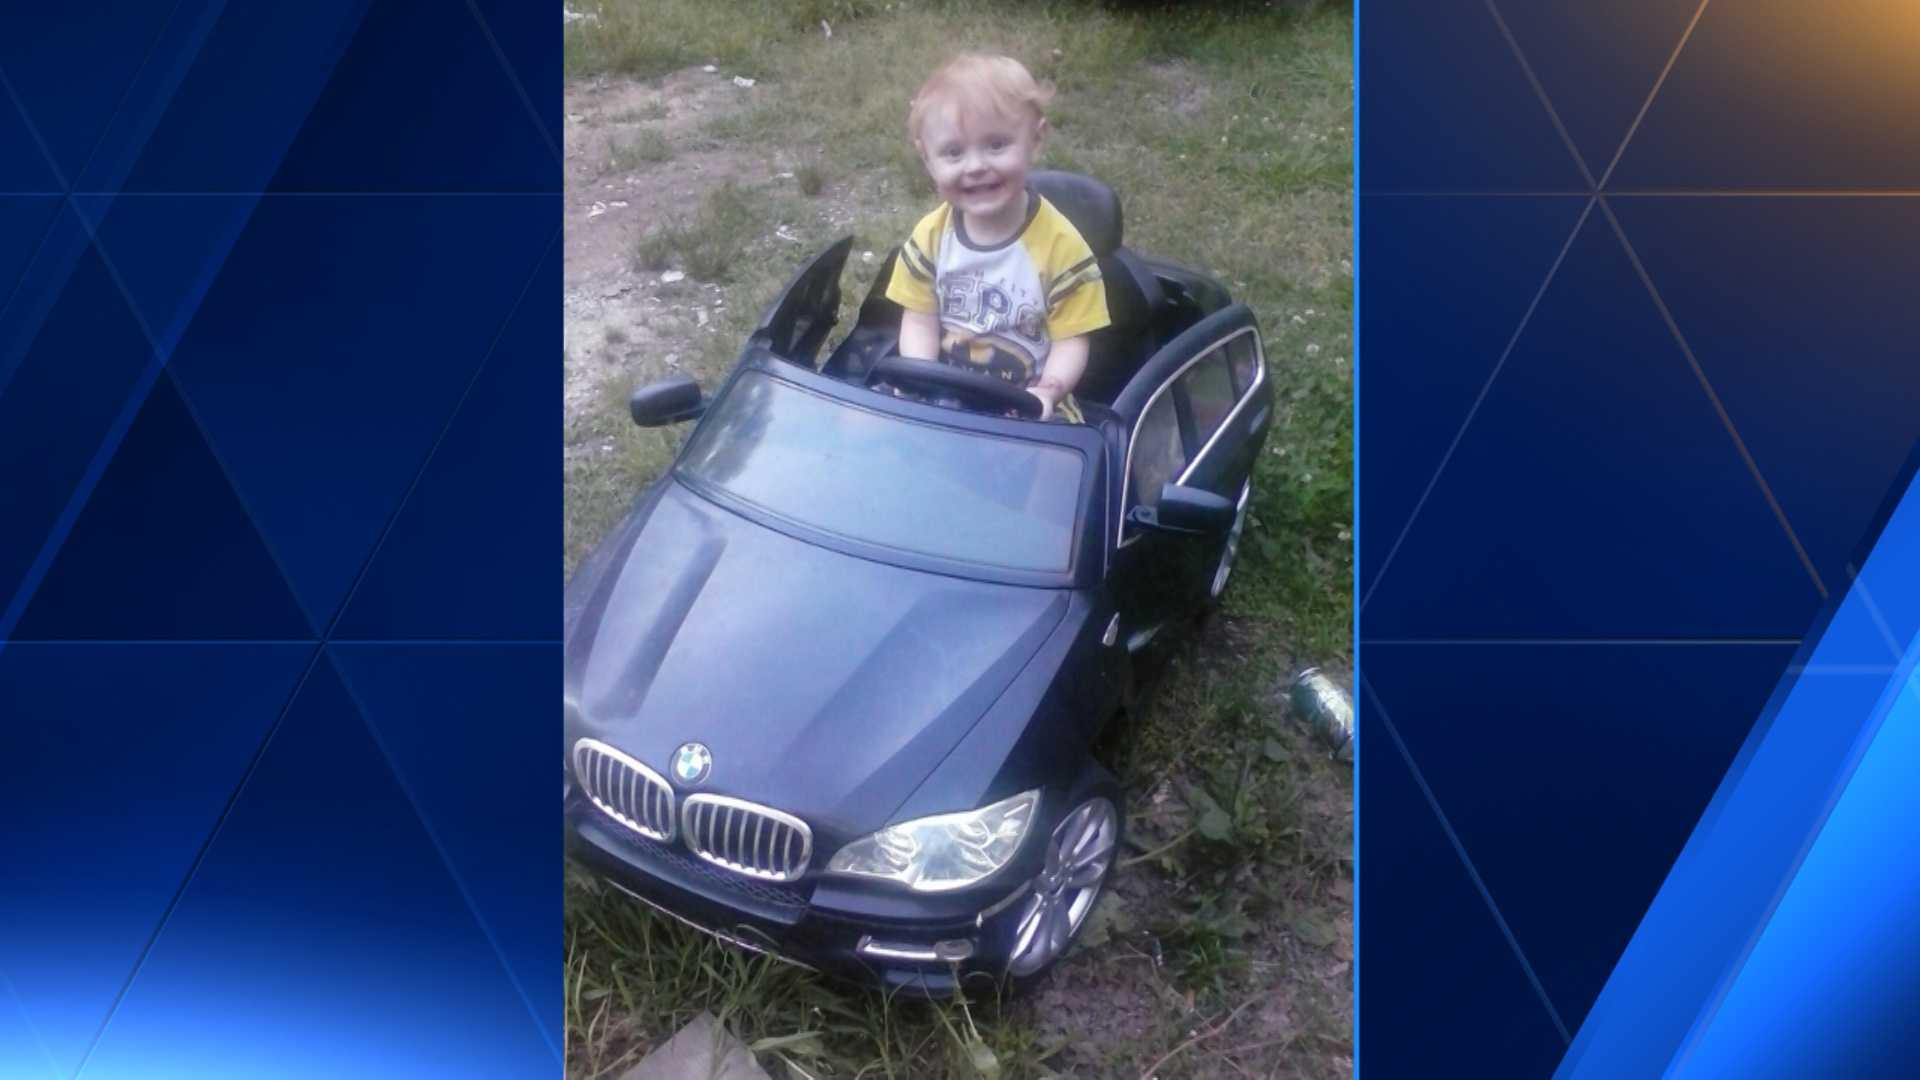 A Coosa County mom and dad are grieving after a family friend accidently ran over their young son, Damien.